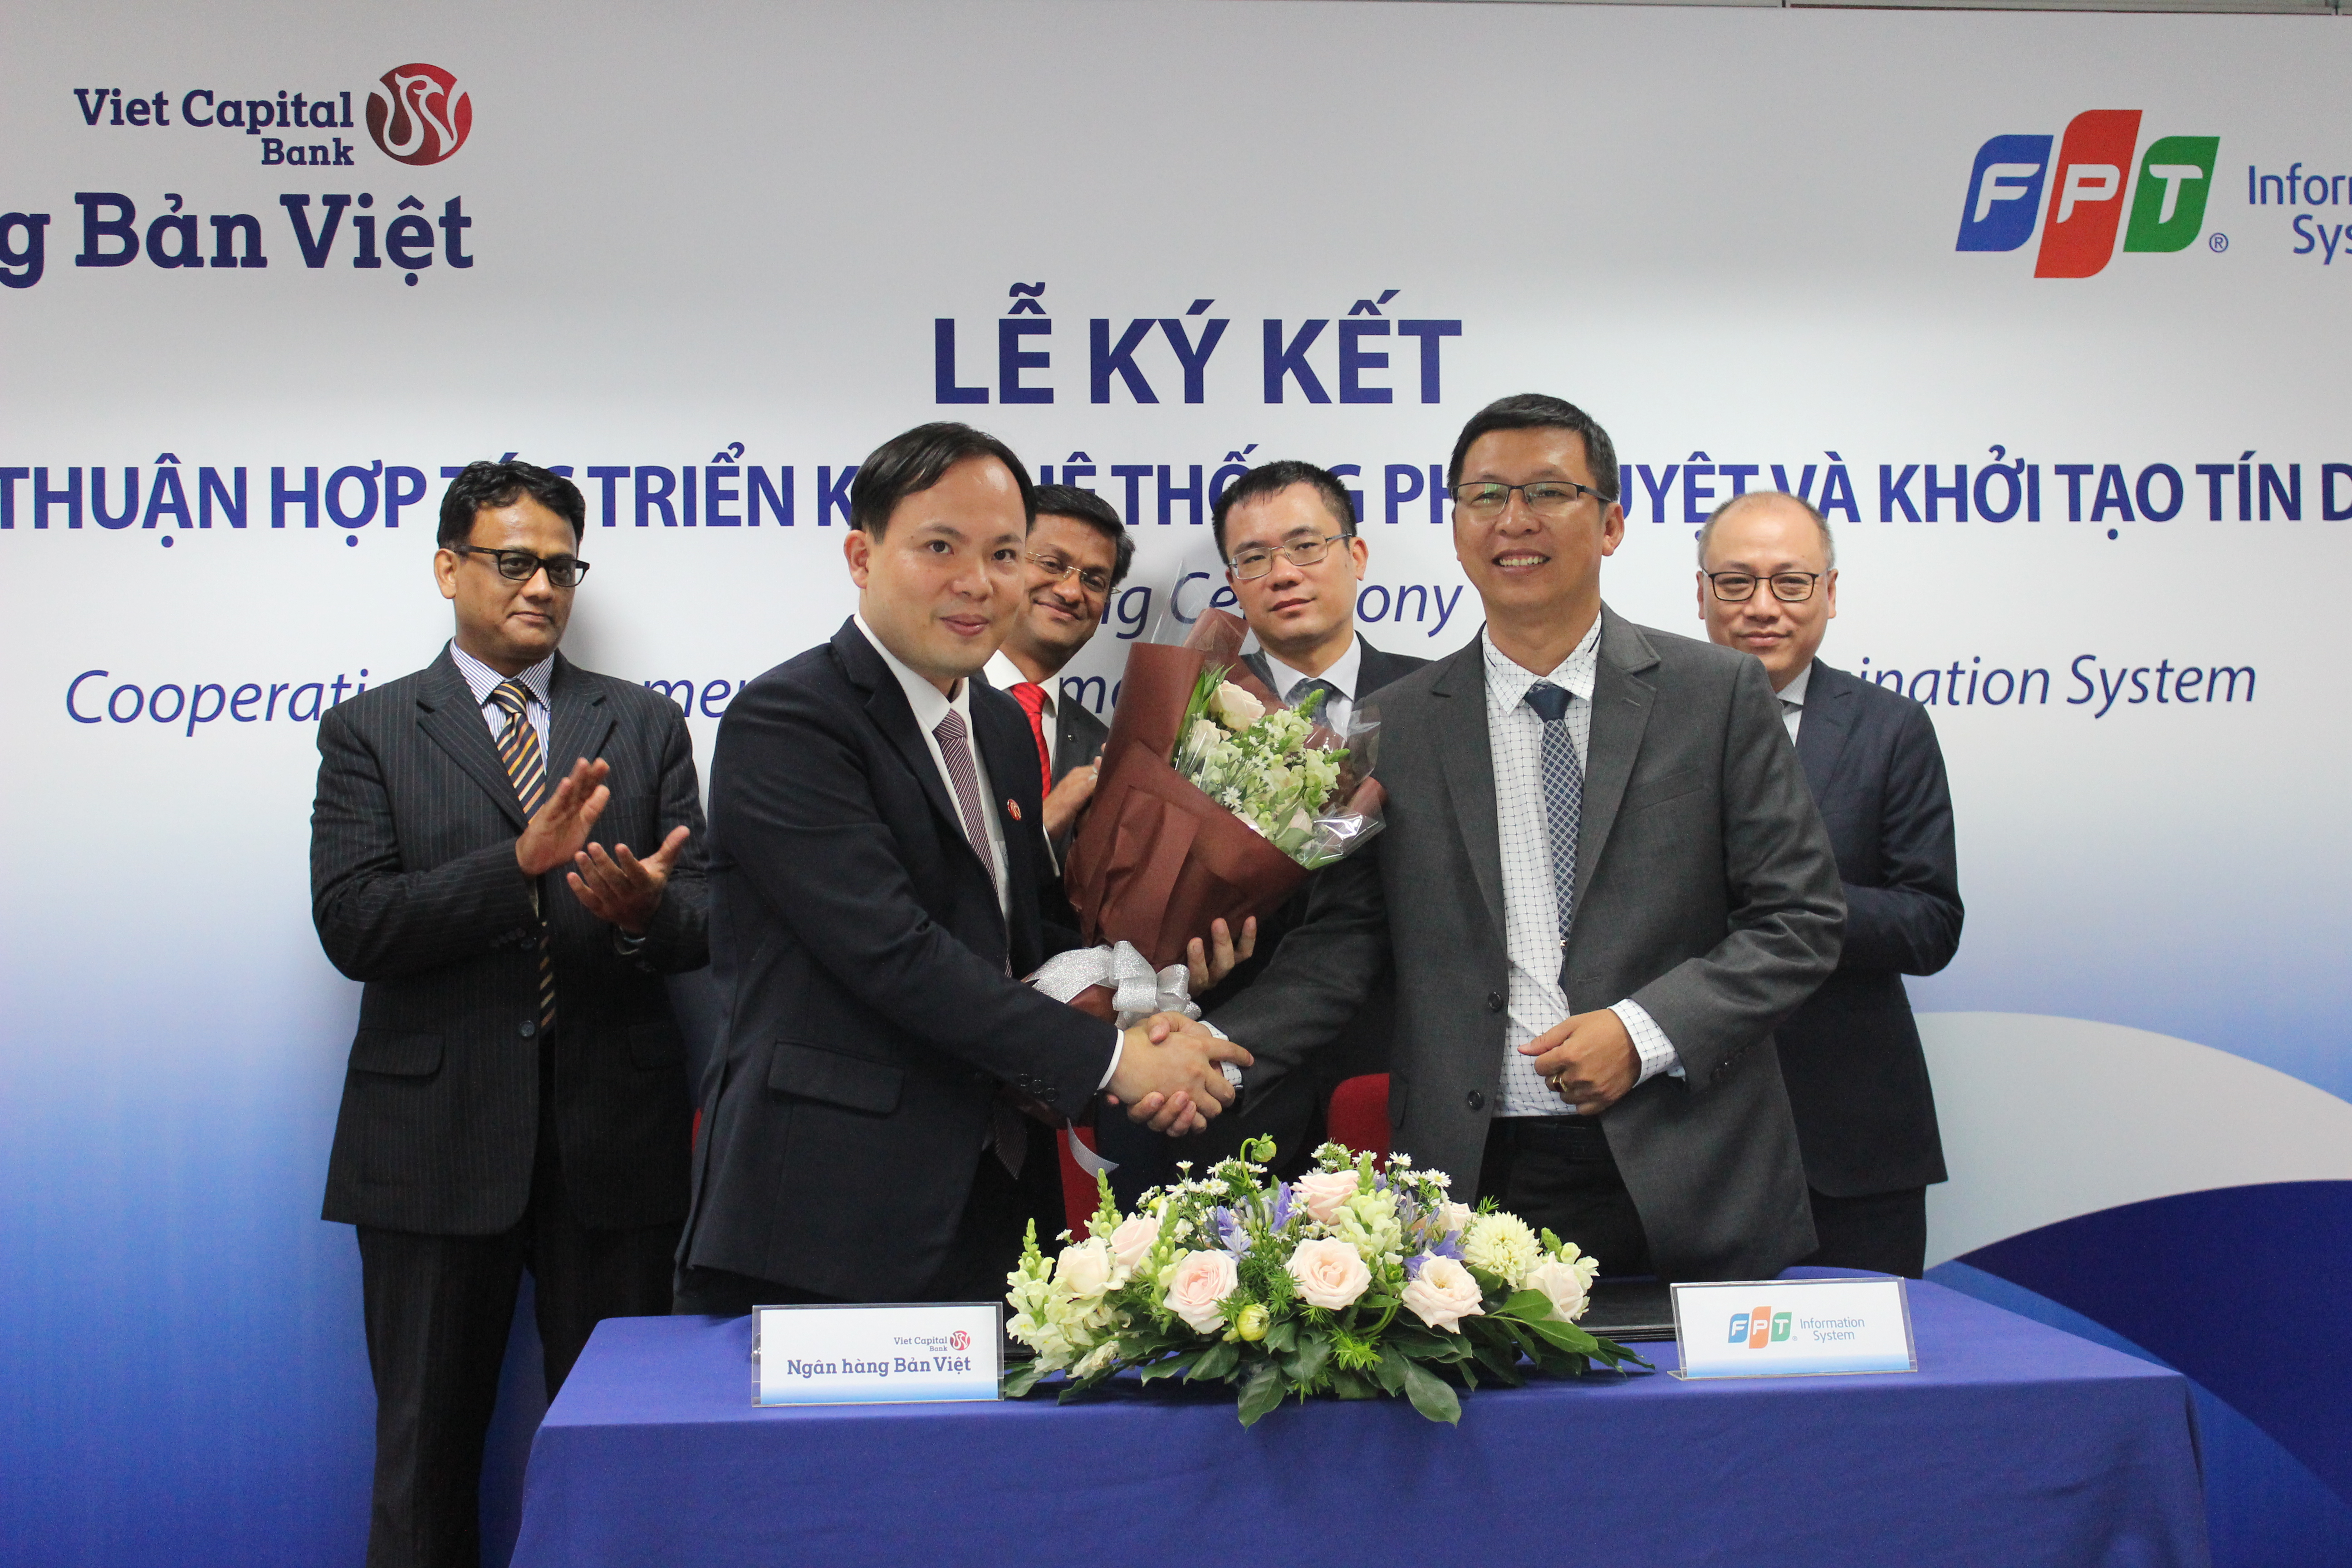 FPT IS digitally transforms credit operations and processes of Viet Capital Bank